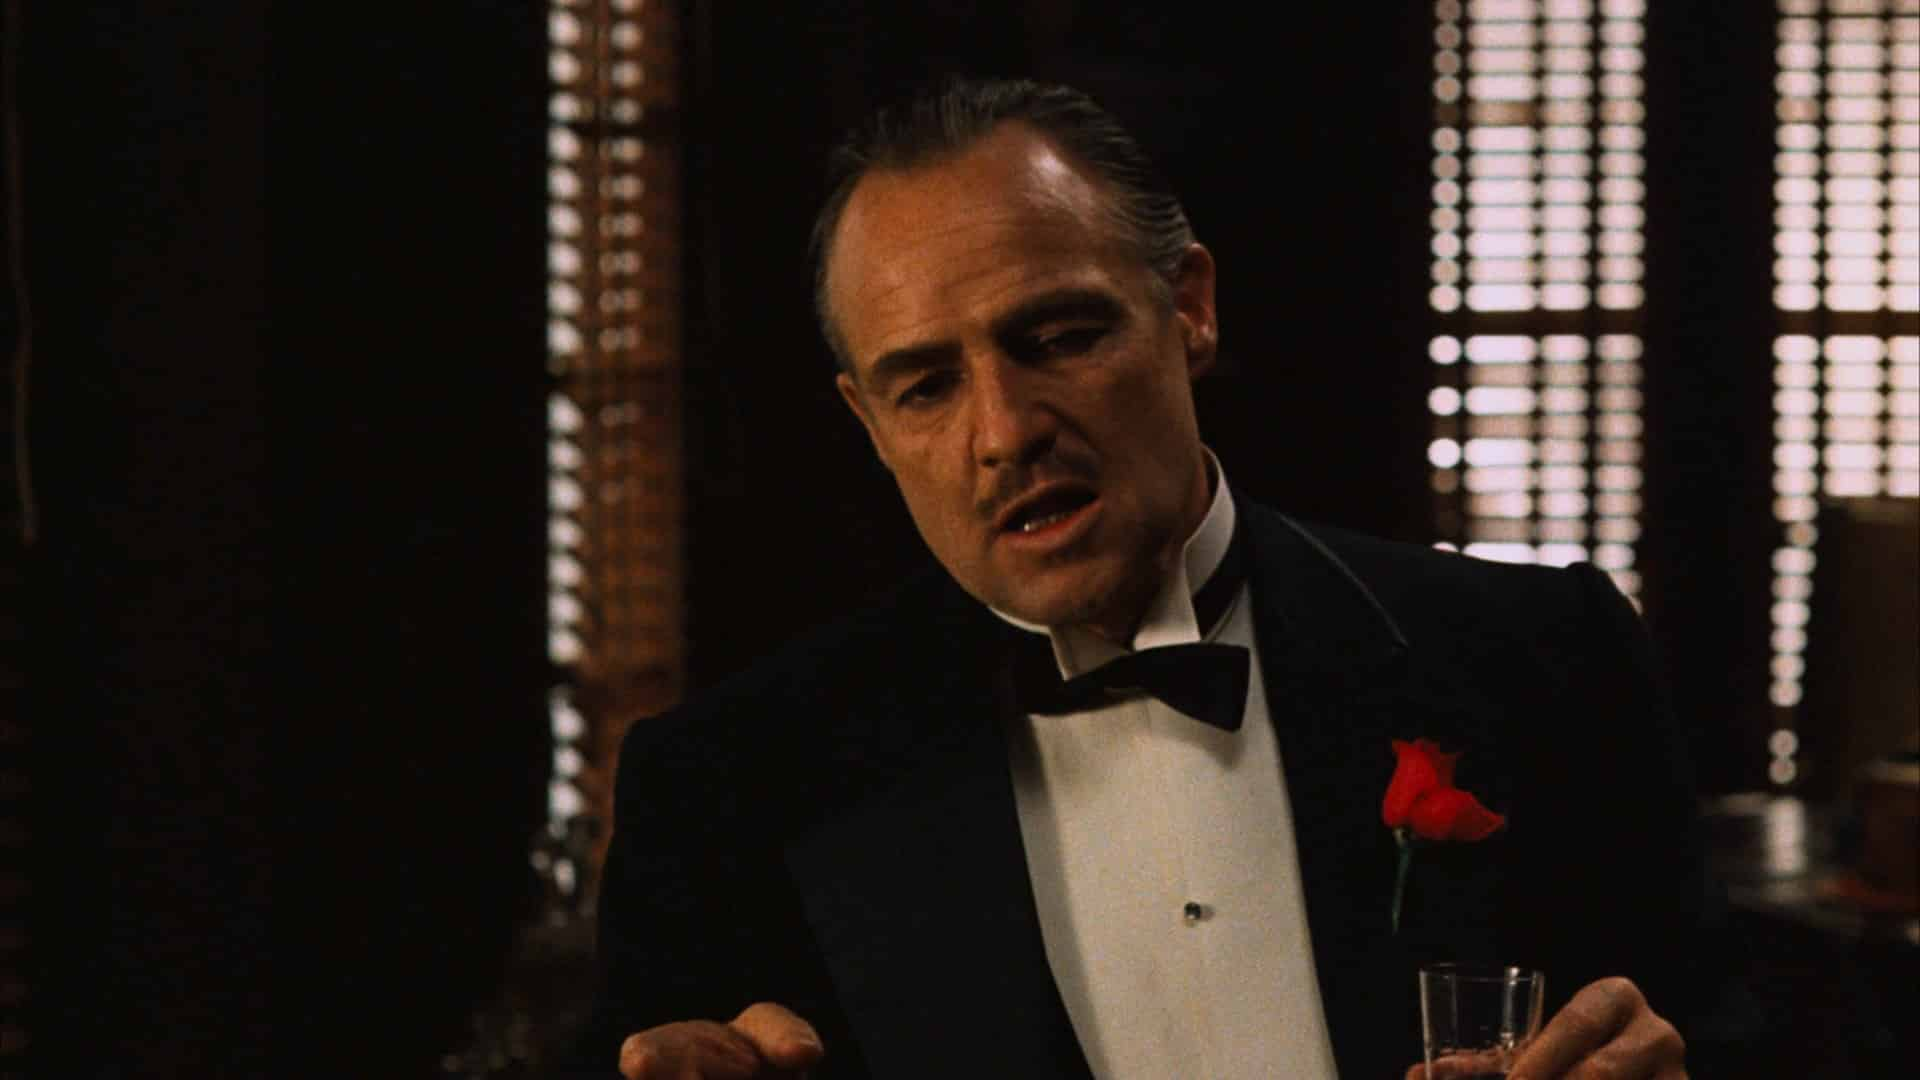 Marlon Brando vo filme Godfather